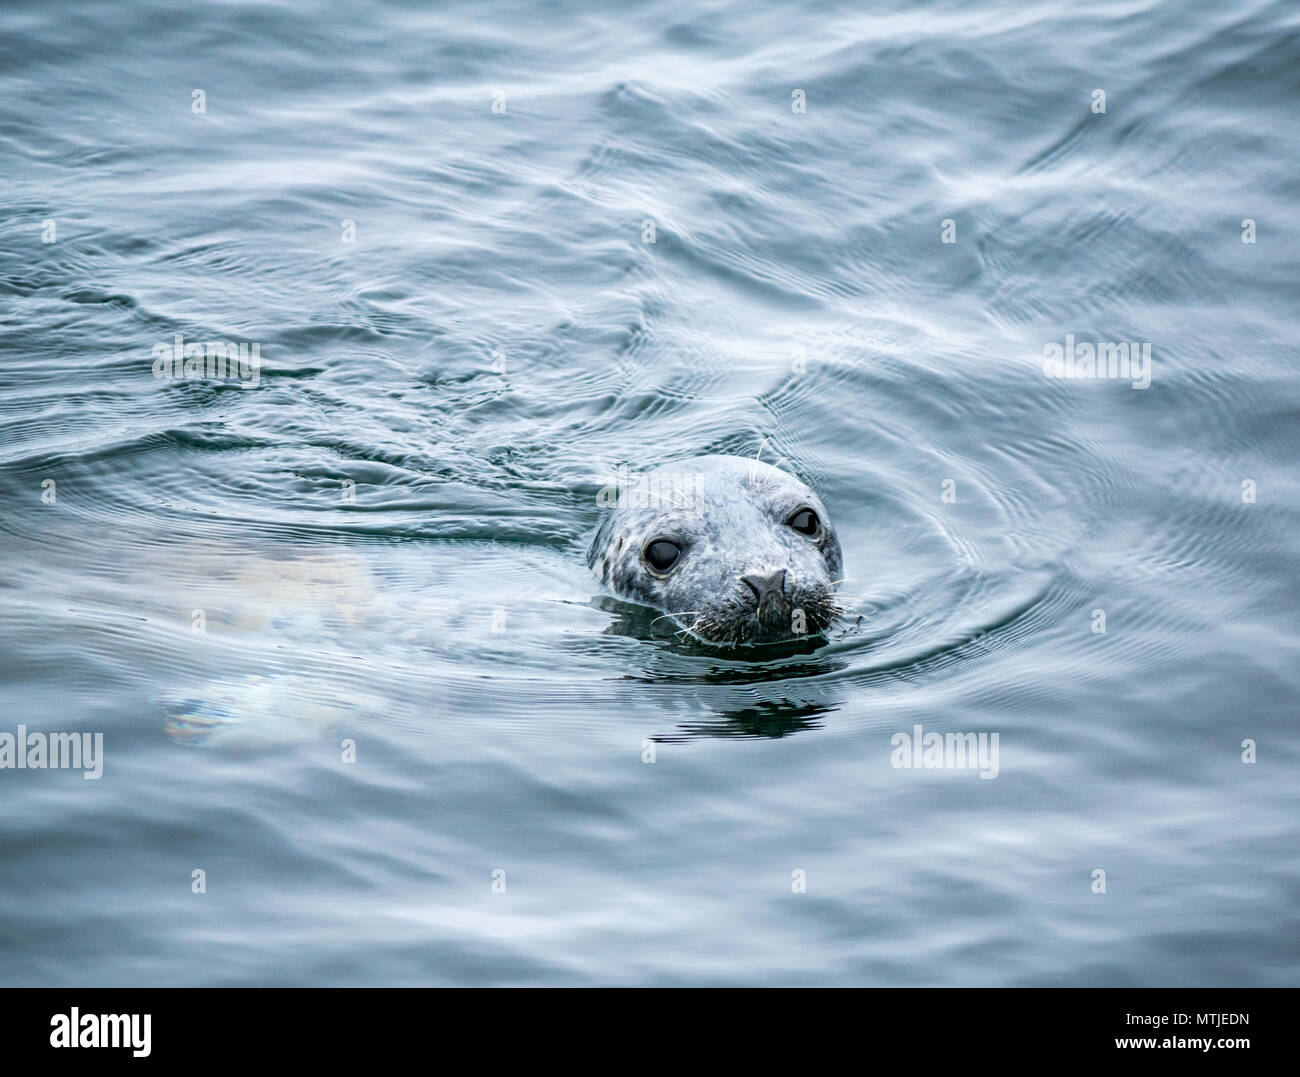 24 May 2018. Firth of Forth, Scotland, UK. Close up of a curious grey seal swimming in the water - Stock Image